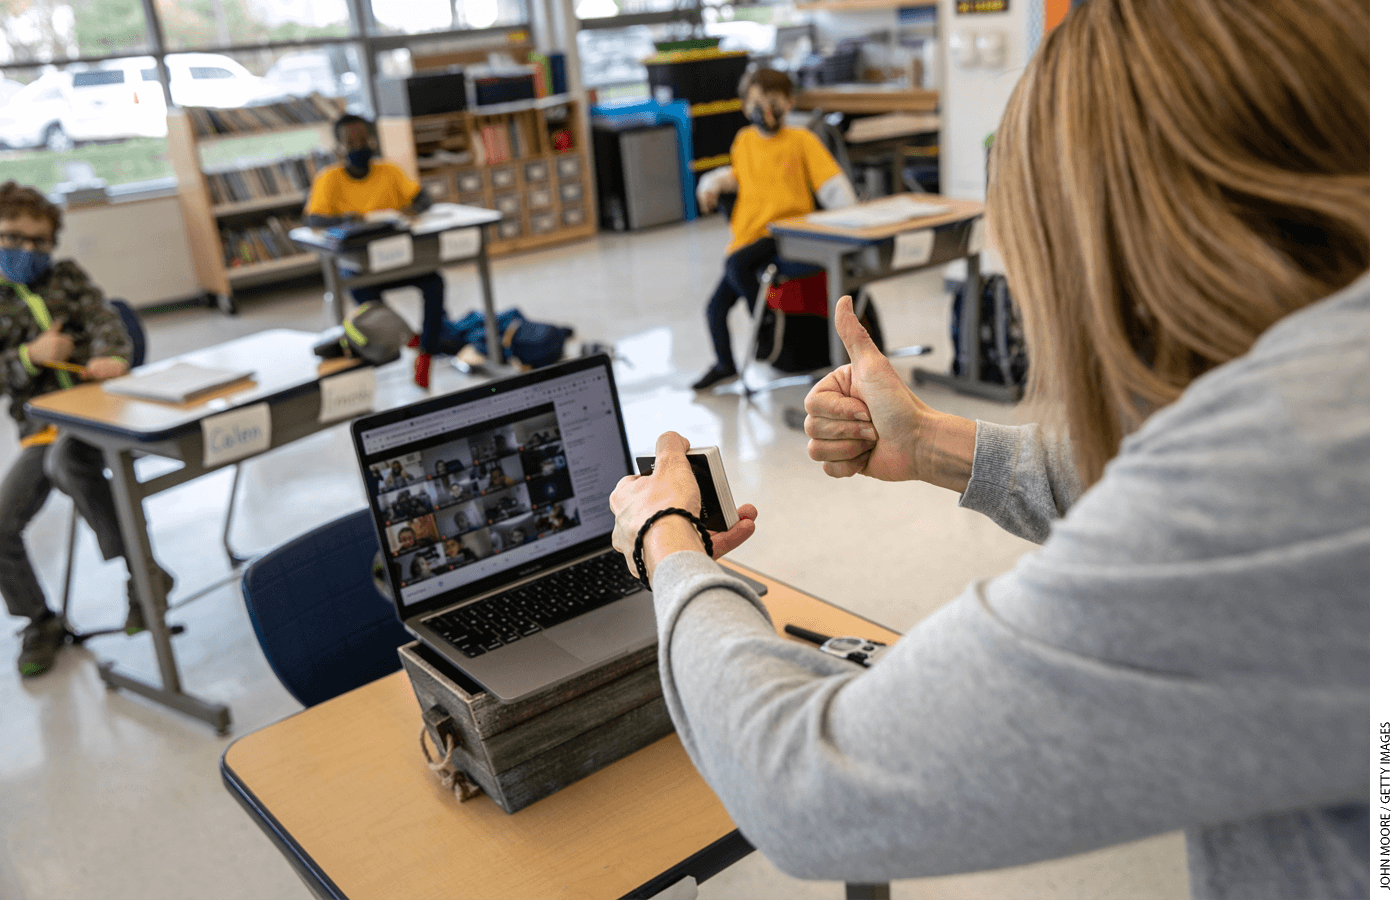 Third-grade teacher Cara Denison manages students in person and remotely, simultaneously, at Rogers International School in Stamford, Connecticut.